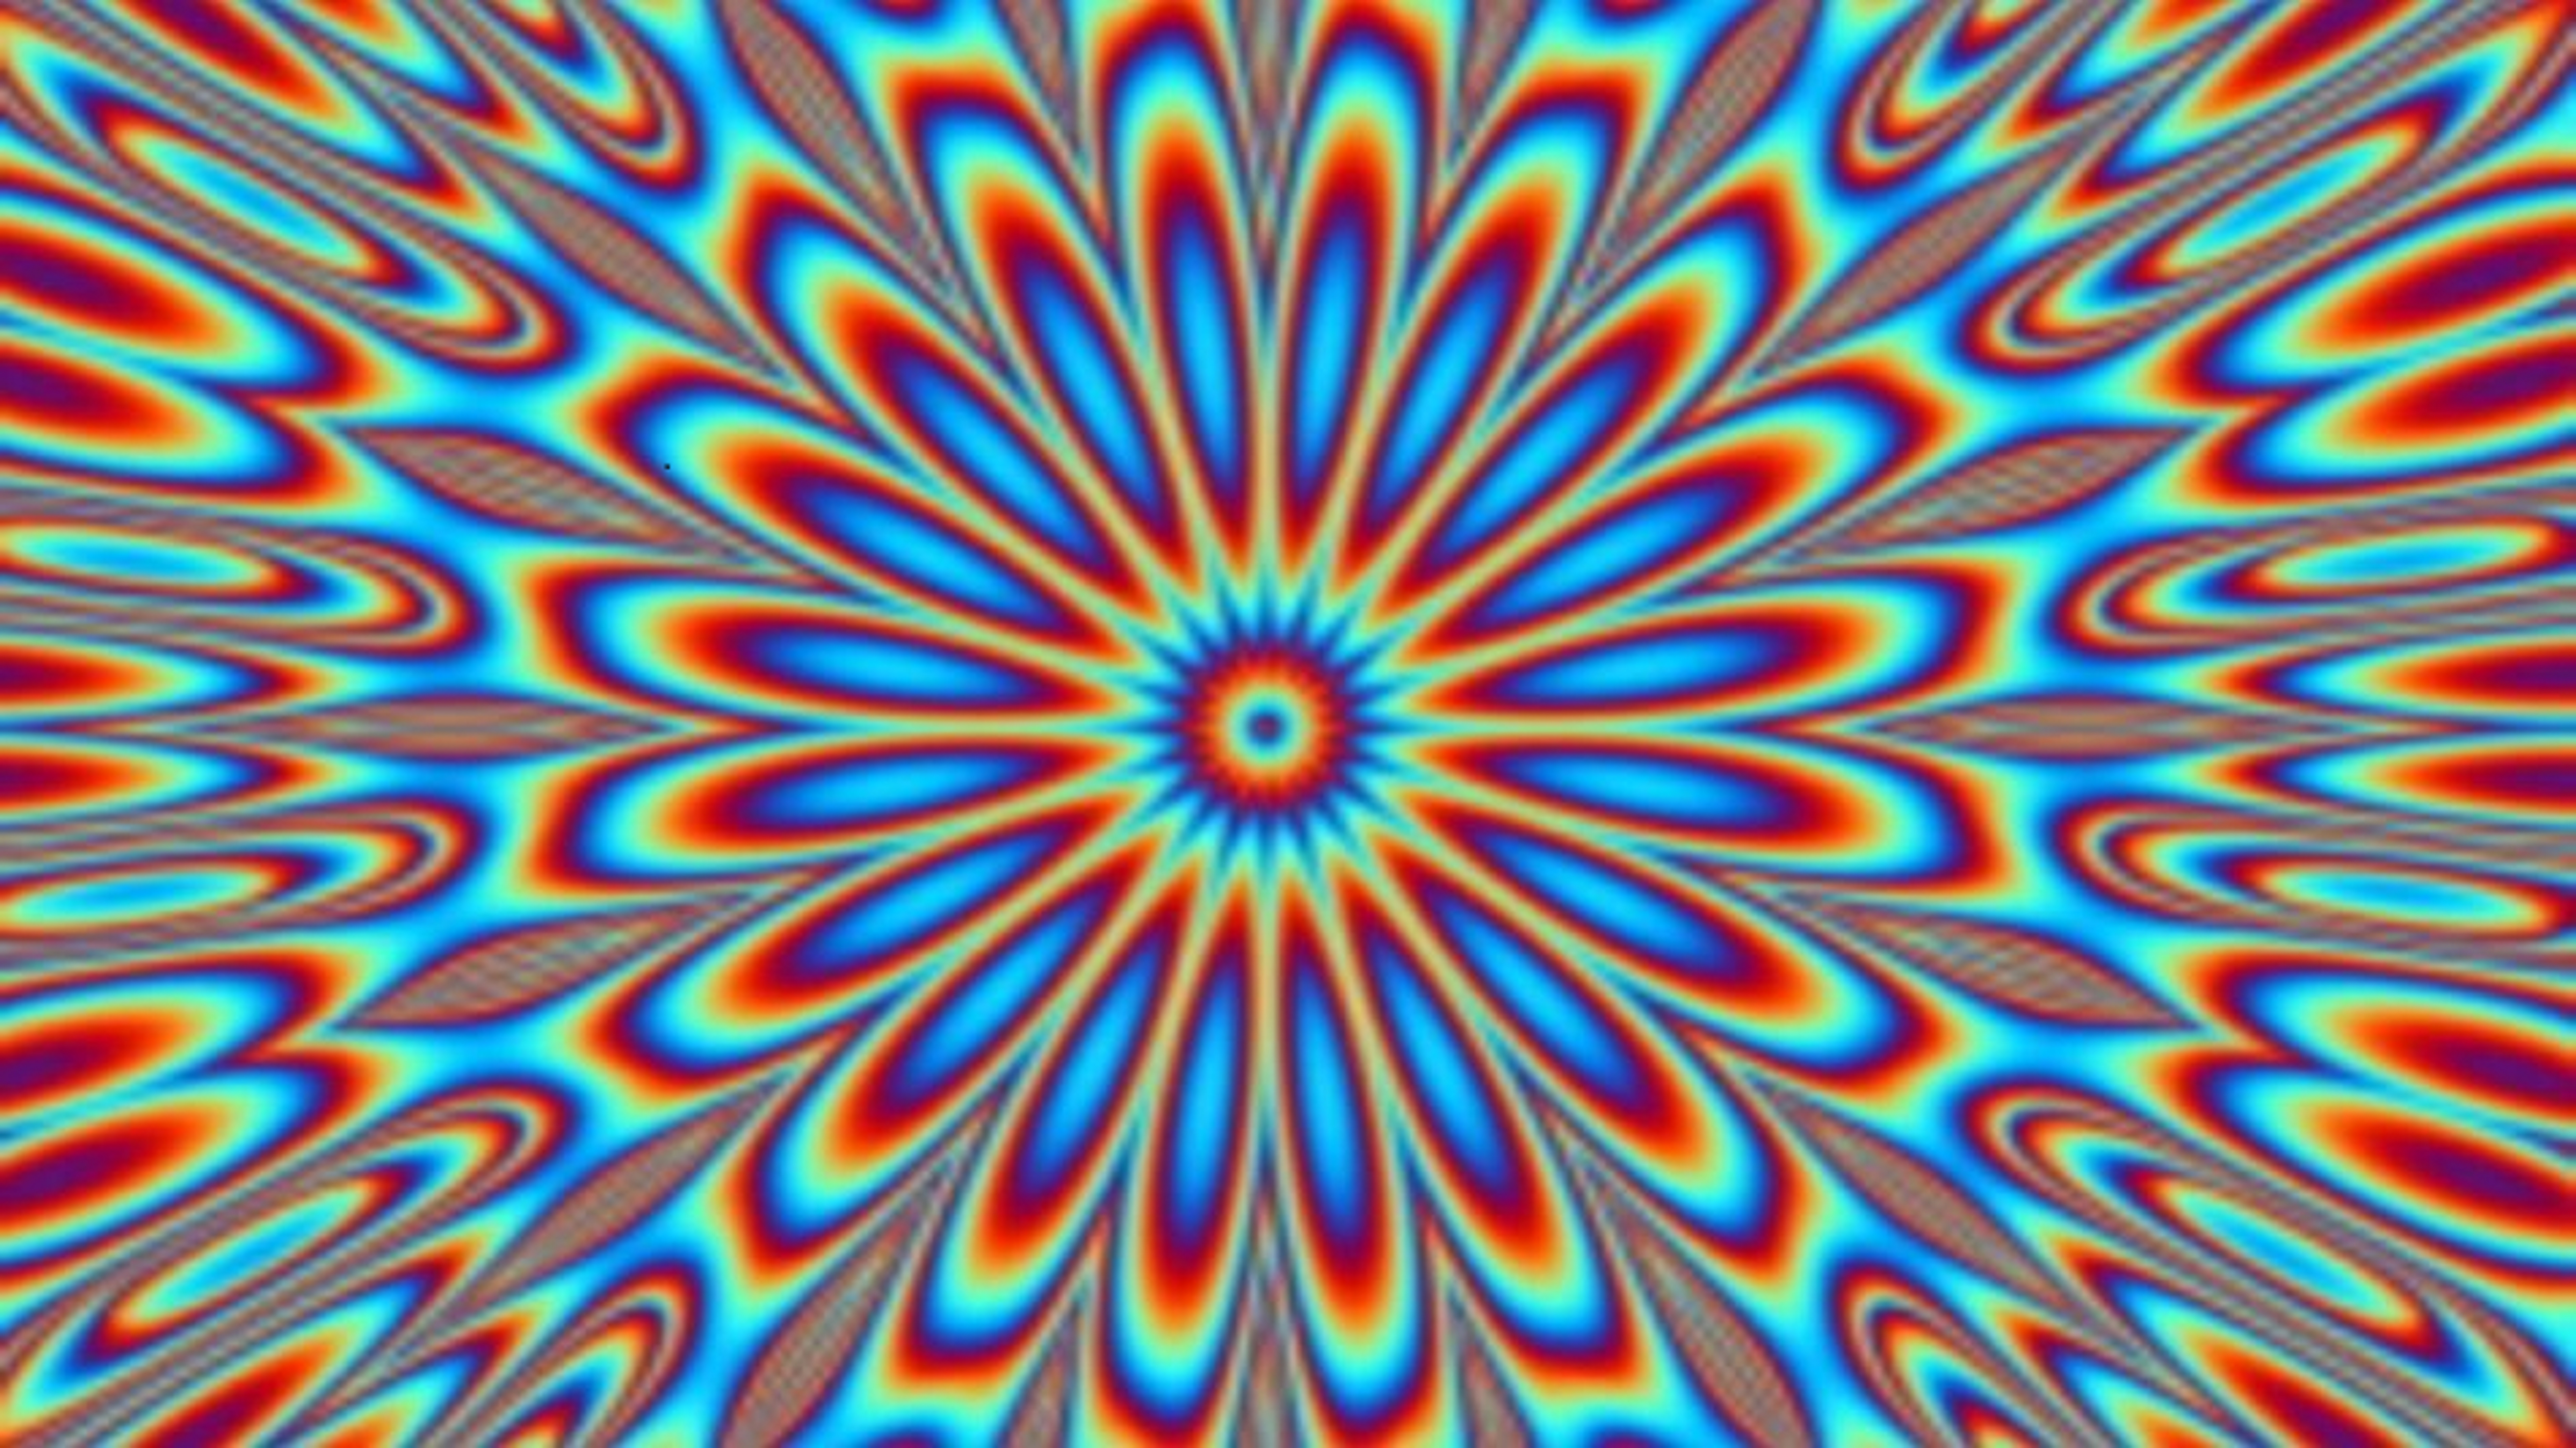 Psychedelic Wallpapers, Pictures, Images